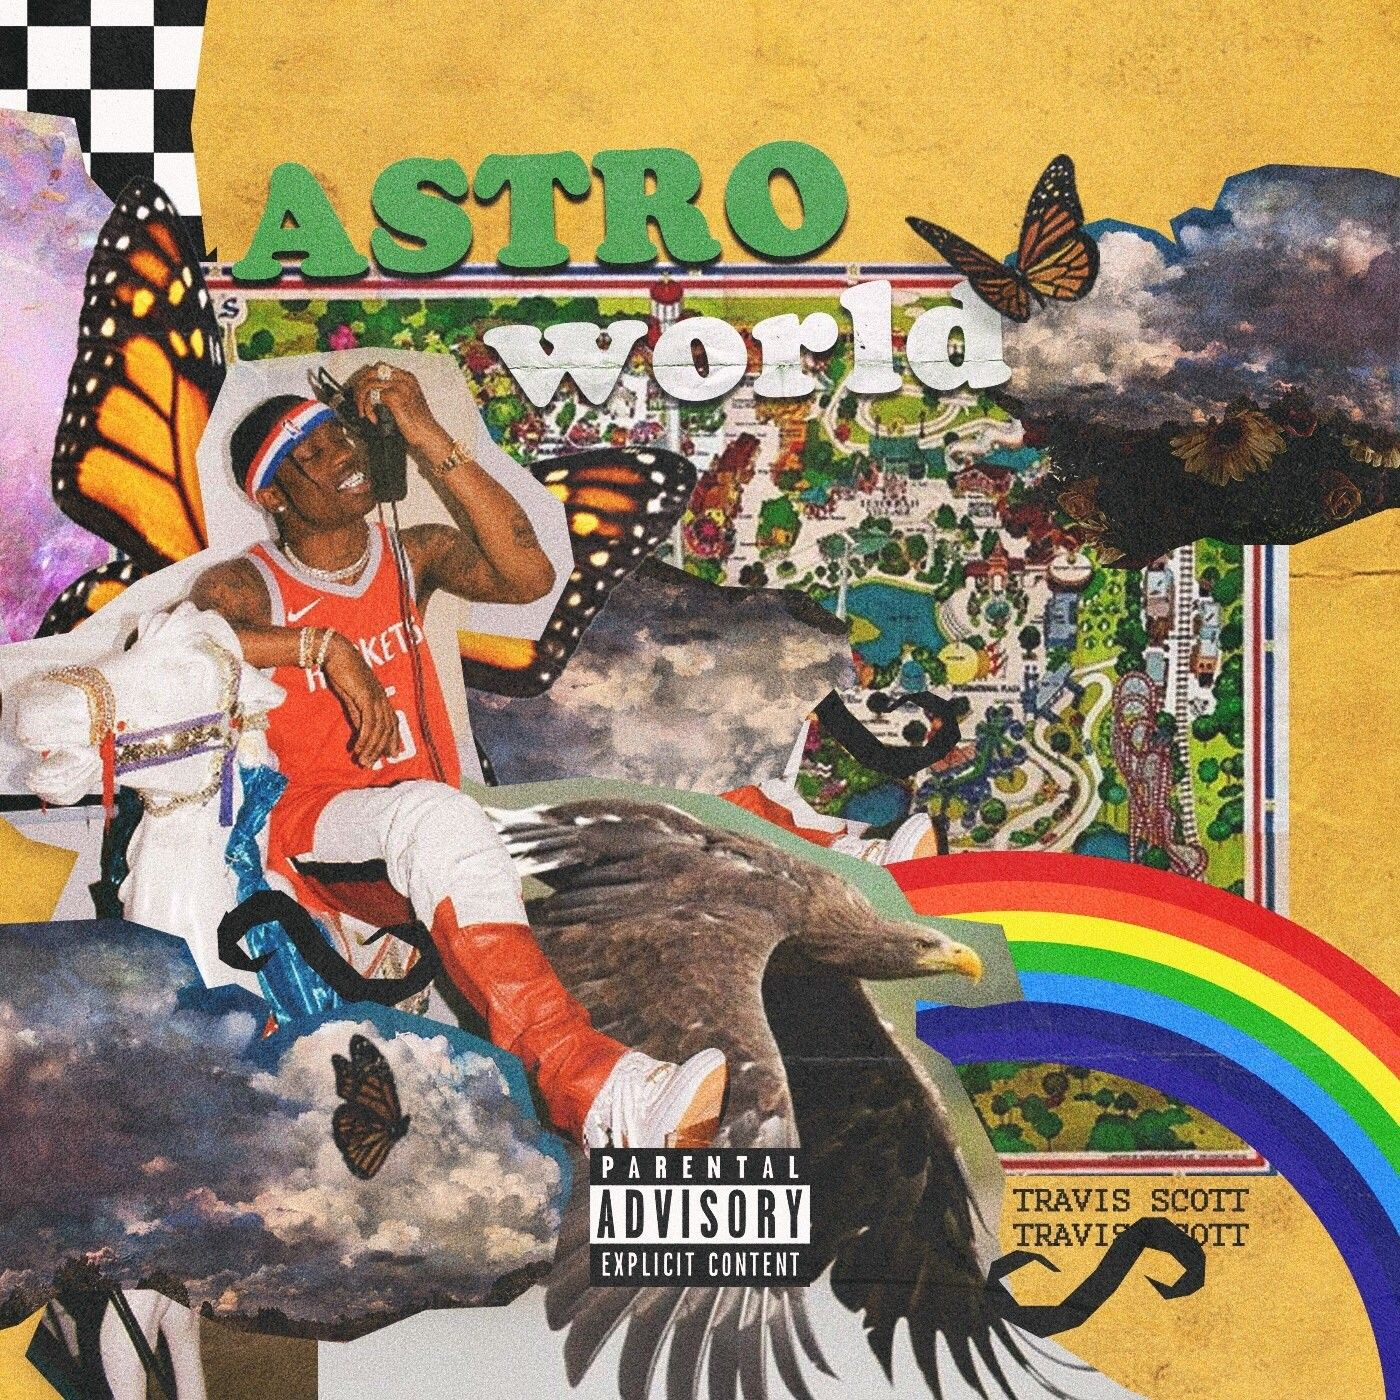 Travis Scott Album Art Design Album Cover Art Cover Art Design